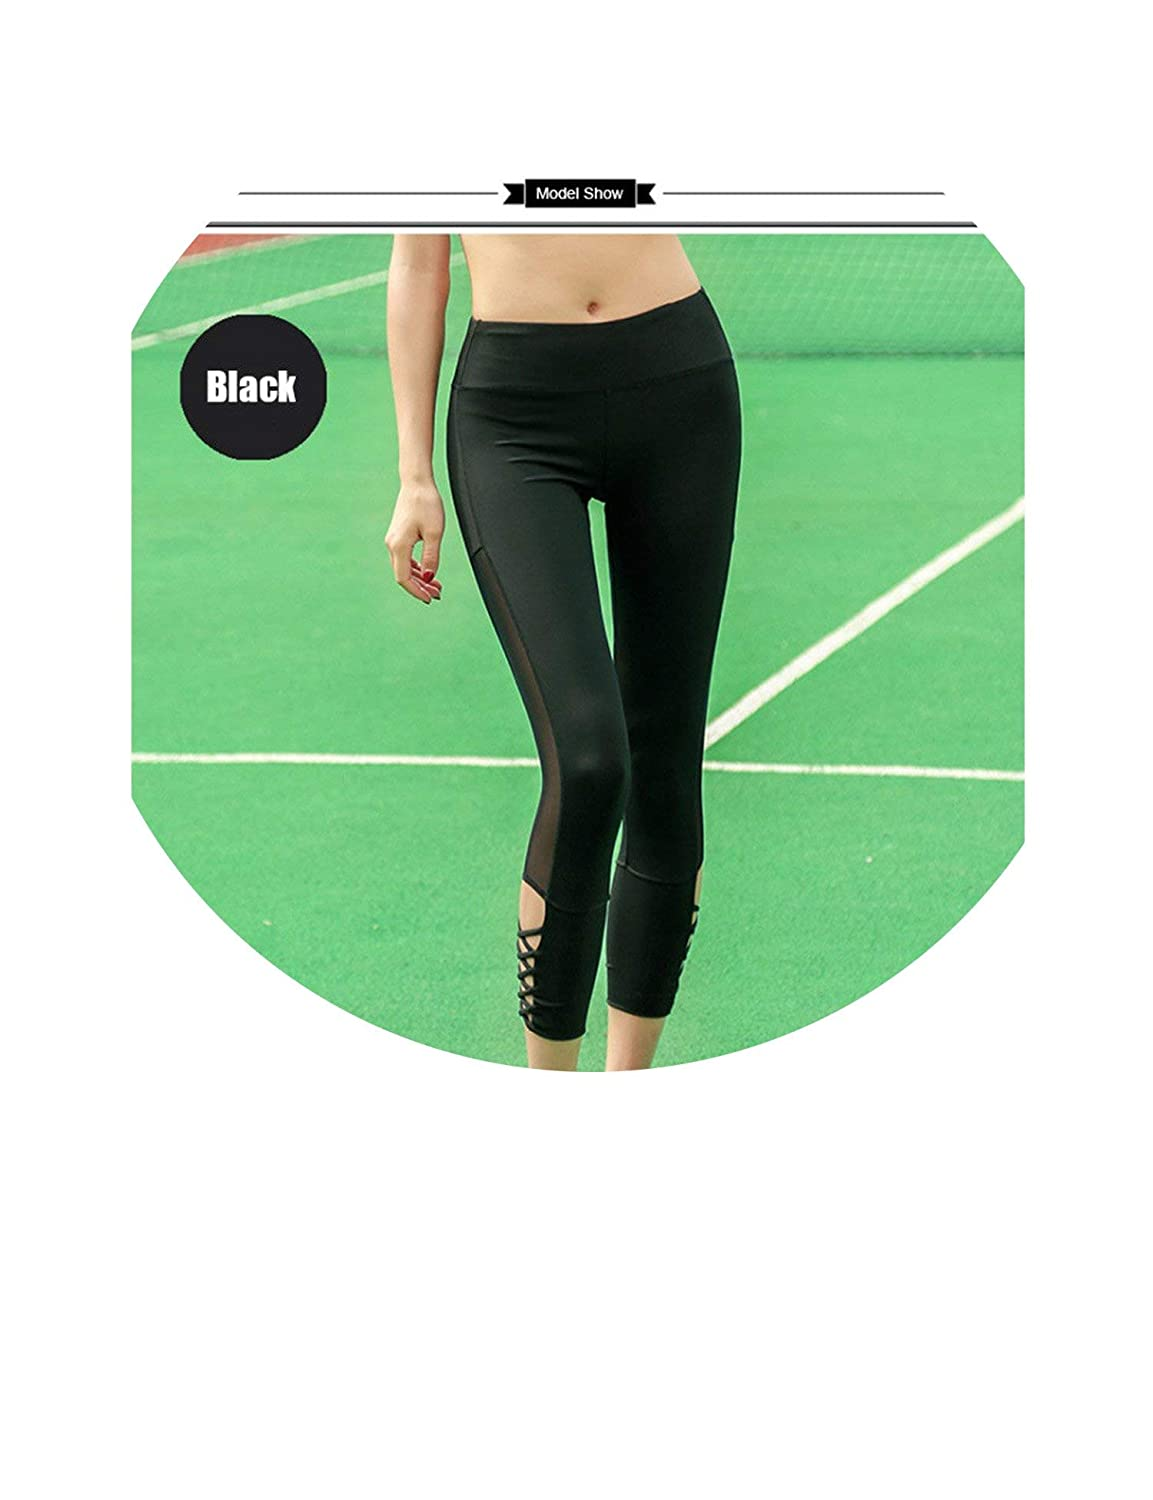 Black Small Pure color Fitness Yoga Pants Workout Leggings Gym Women Middle Waist Tights SeeThrough Trousers